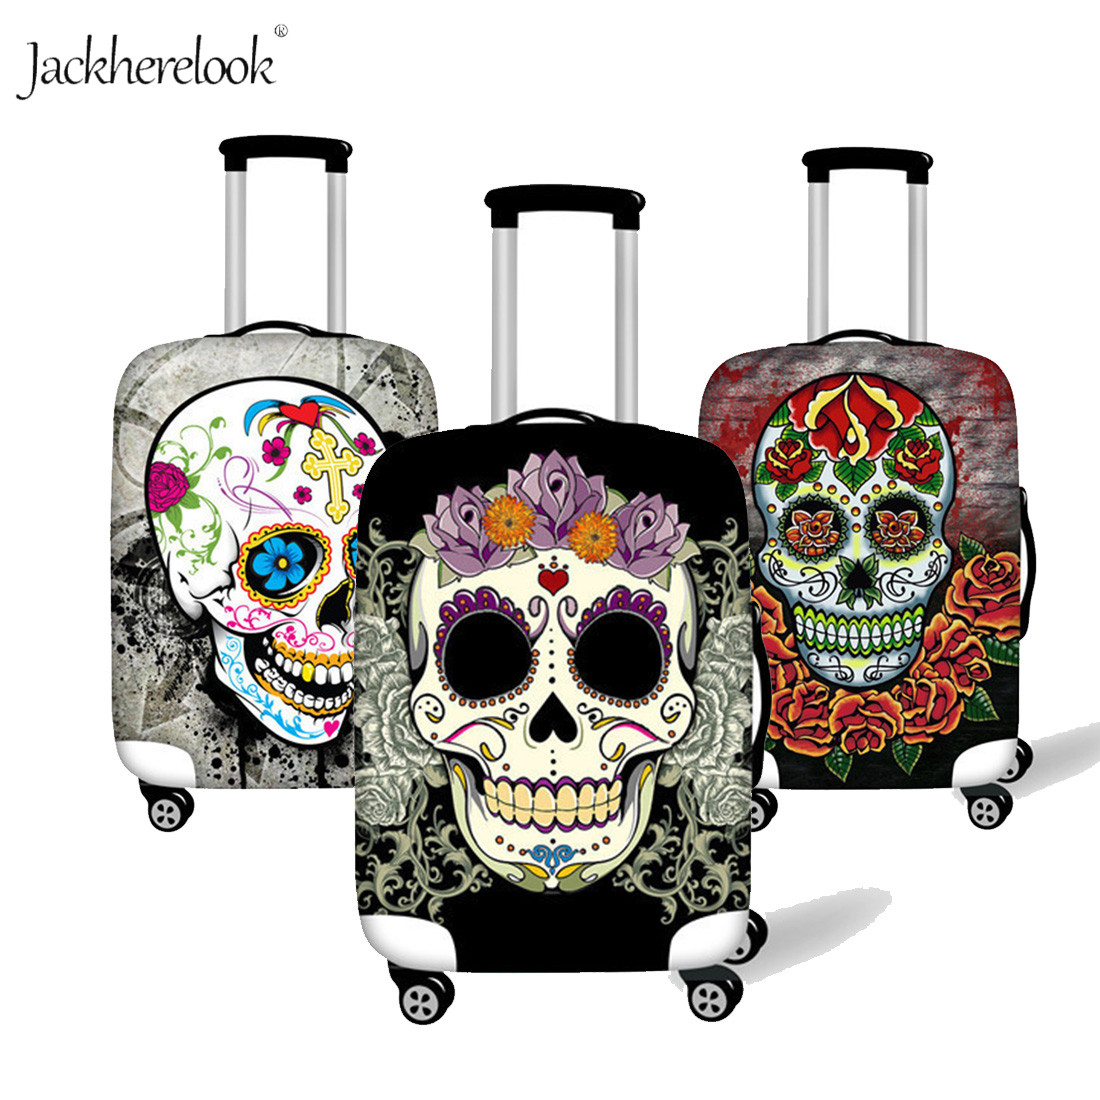 Jackherelook Cool Sugar Skull Baggage Bag Cover Dust Rain Proof Case For 18-32 Inch Luggage Bag Flower Travel Protective Trunk